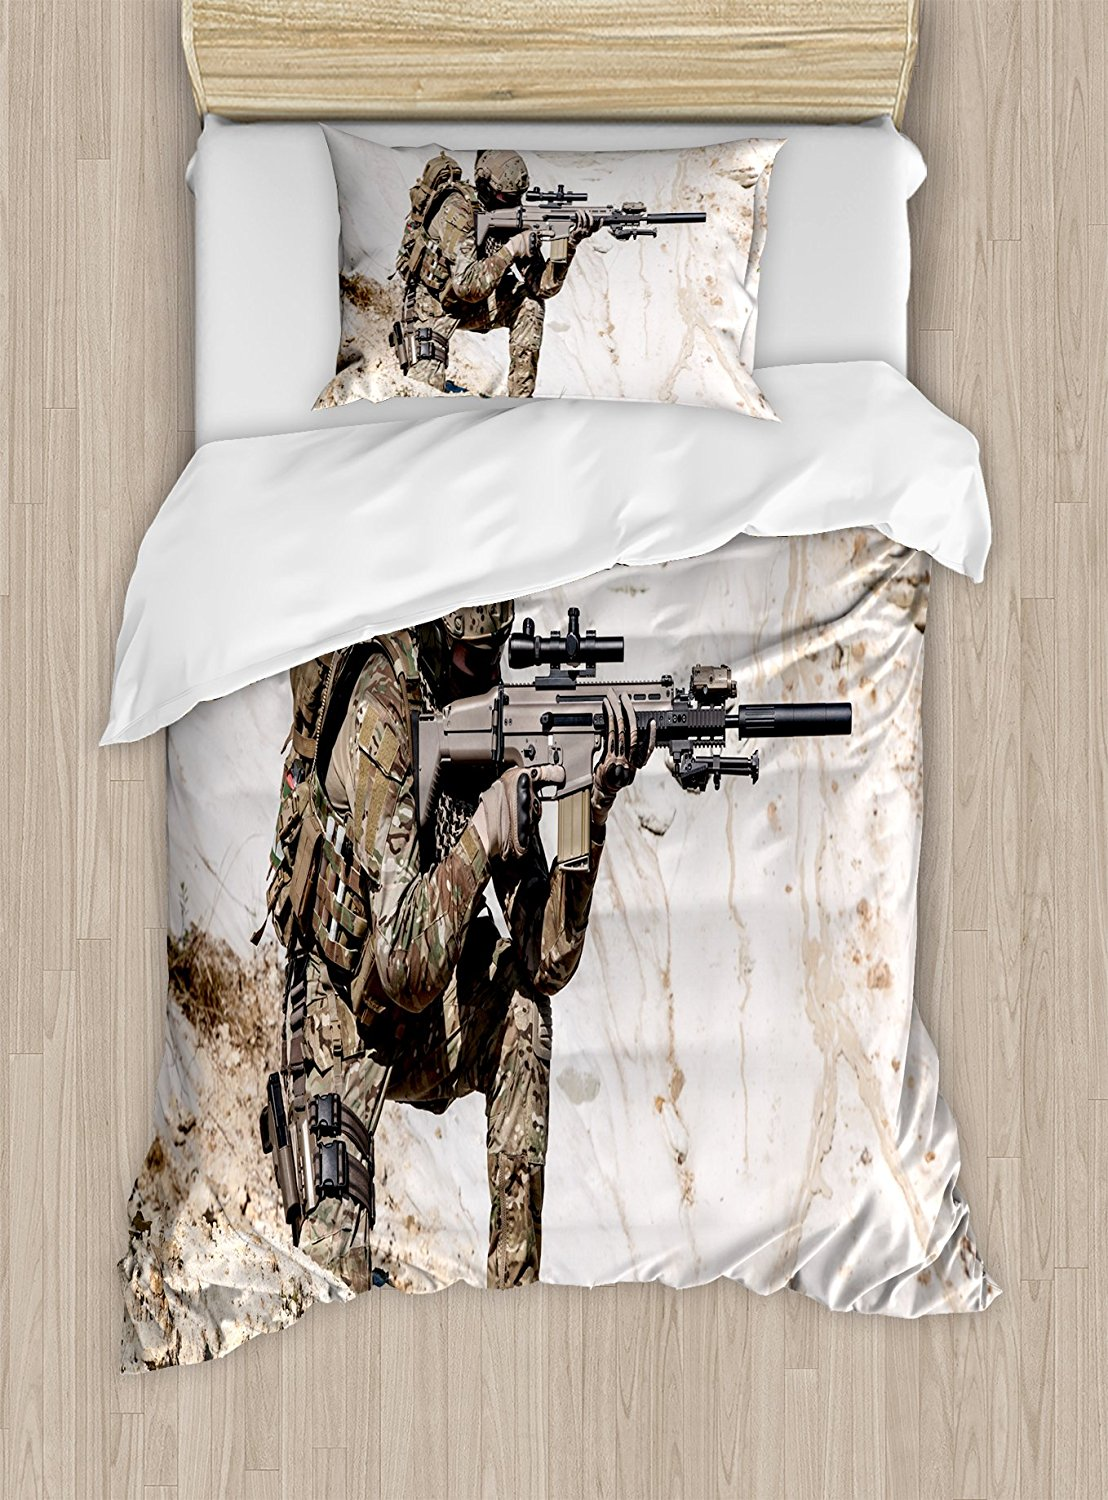 Army Duvet Cover Set United States Ranger On The Mountain Targeting With Gun Camouflage War Theme Picture 4 Piece Bedding In Sets From Home